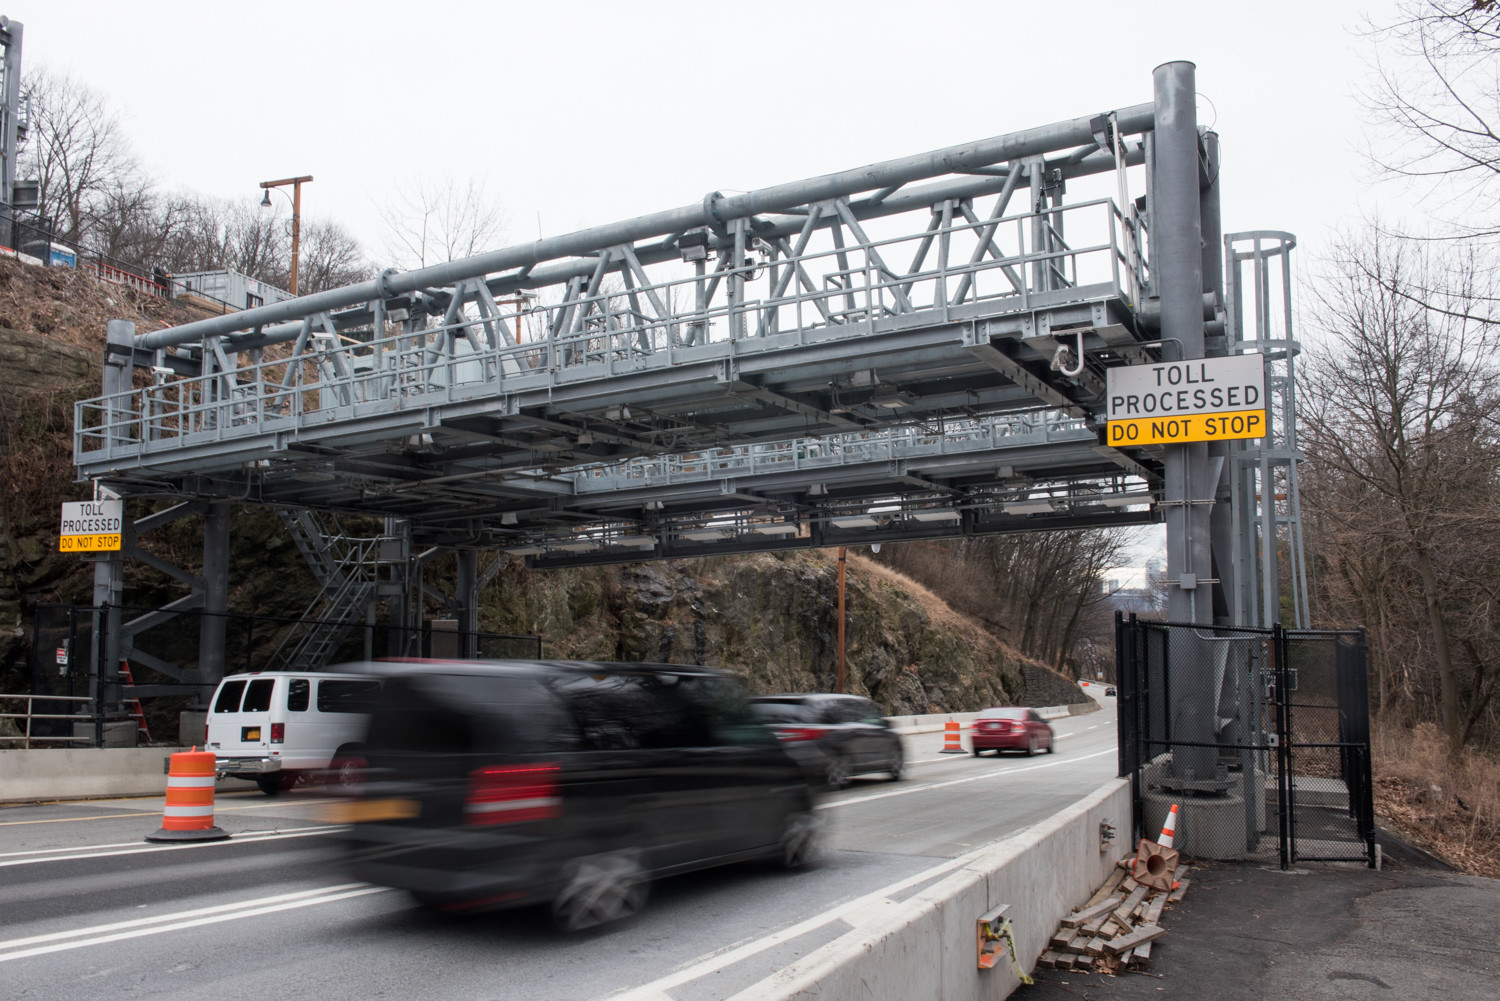 Think tolls are high? Wait until you see the fees   The Riverdale